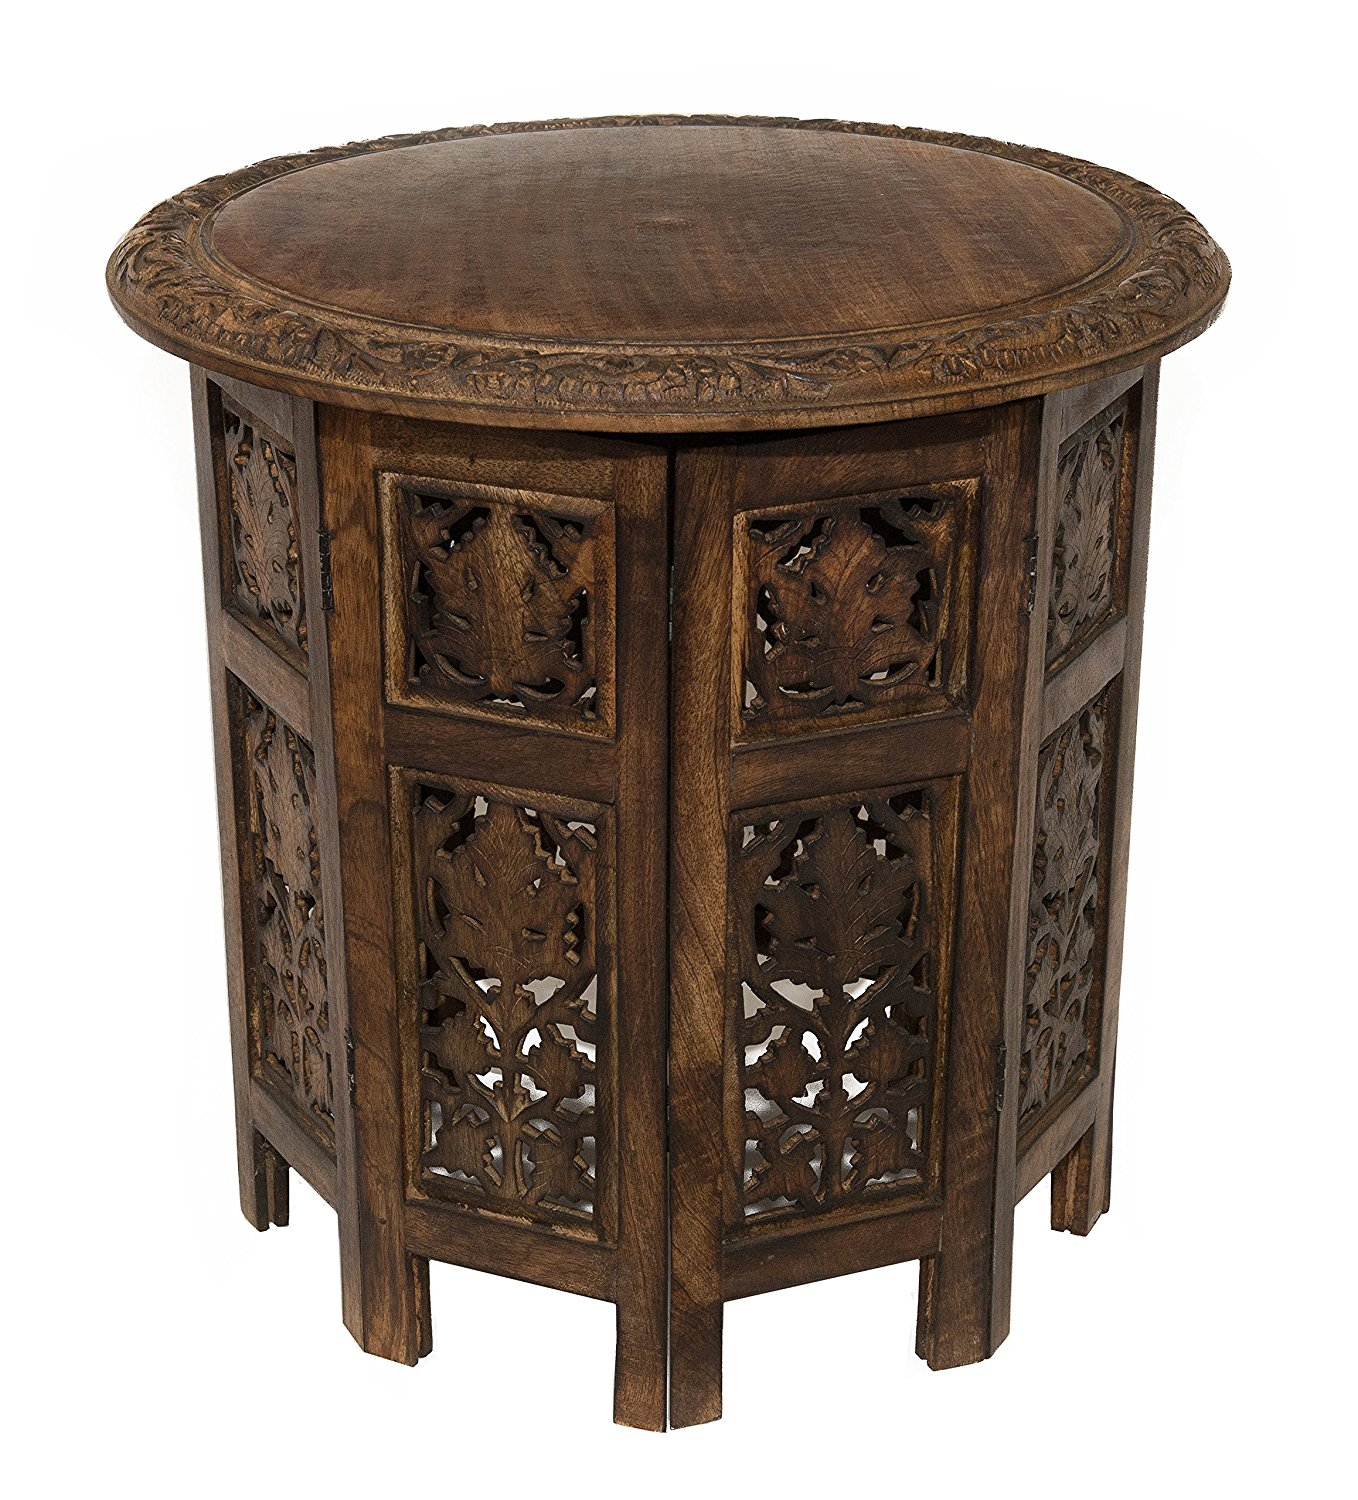 lovely small accent table for ornate high end tables wooden round mirrored side unit mosaic steel mesh patio furniture ikea storage ideas narrow sofa behind couch hairpin legs